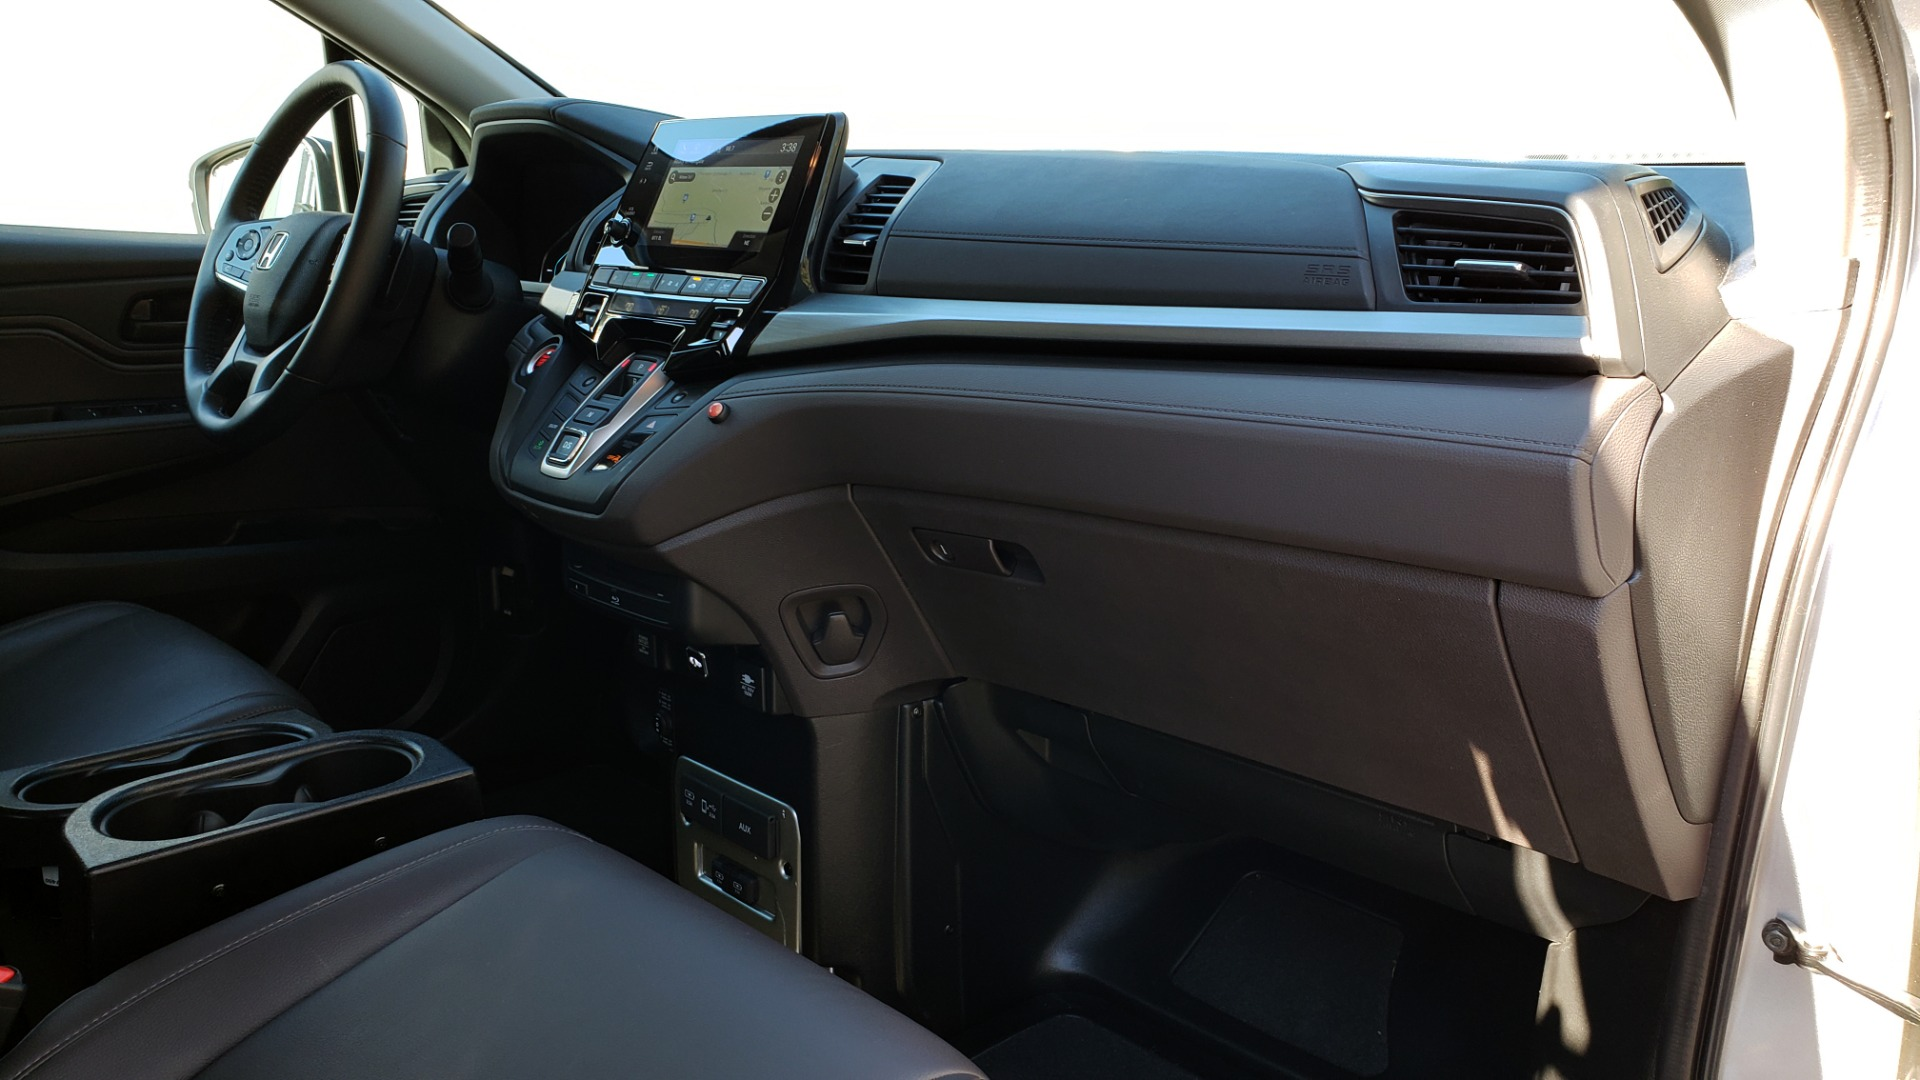 Used 2019 Honda ODYSSEY EX-L BRAUNABILITY / NAV / RES / LKA / BLUE-RAY / SUNROOF / REARVIEW for sale $49,999 at Formula Imports in Charlotte NC 28227 40